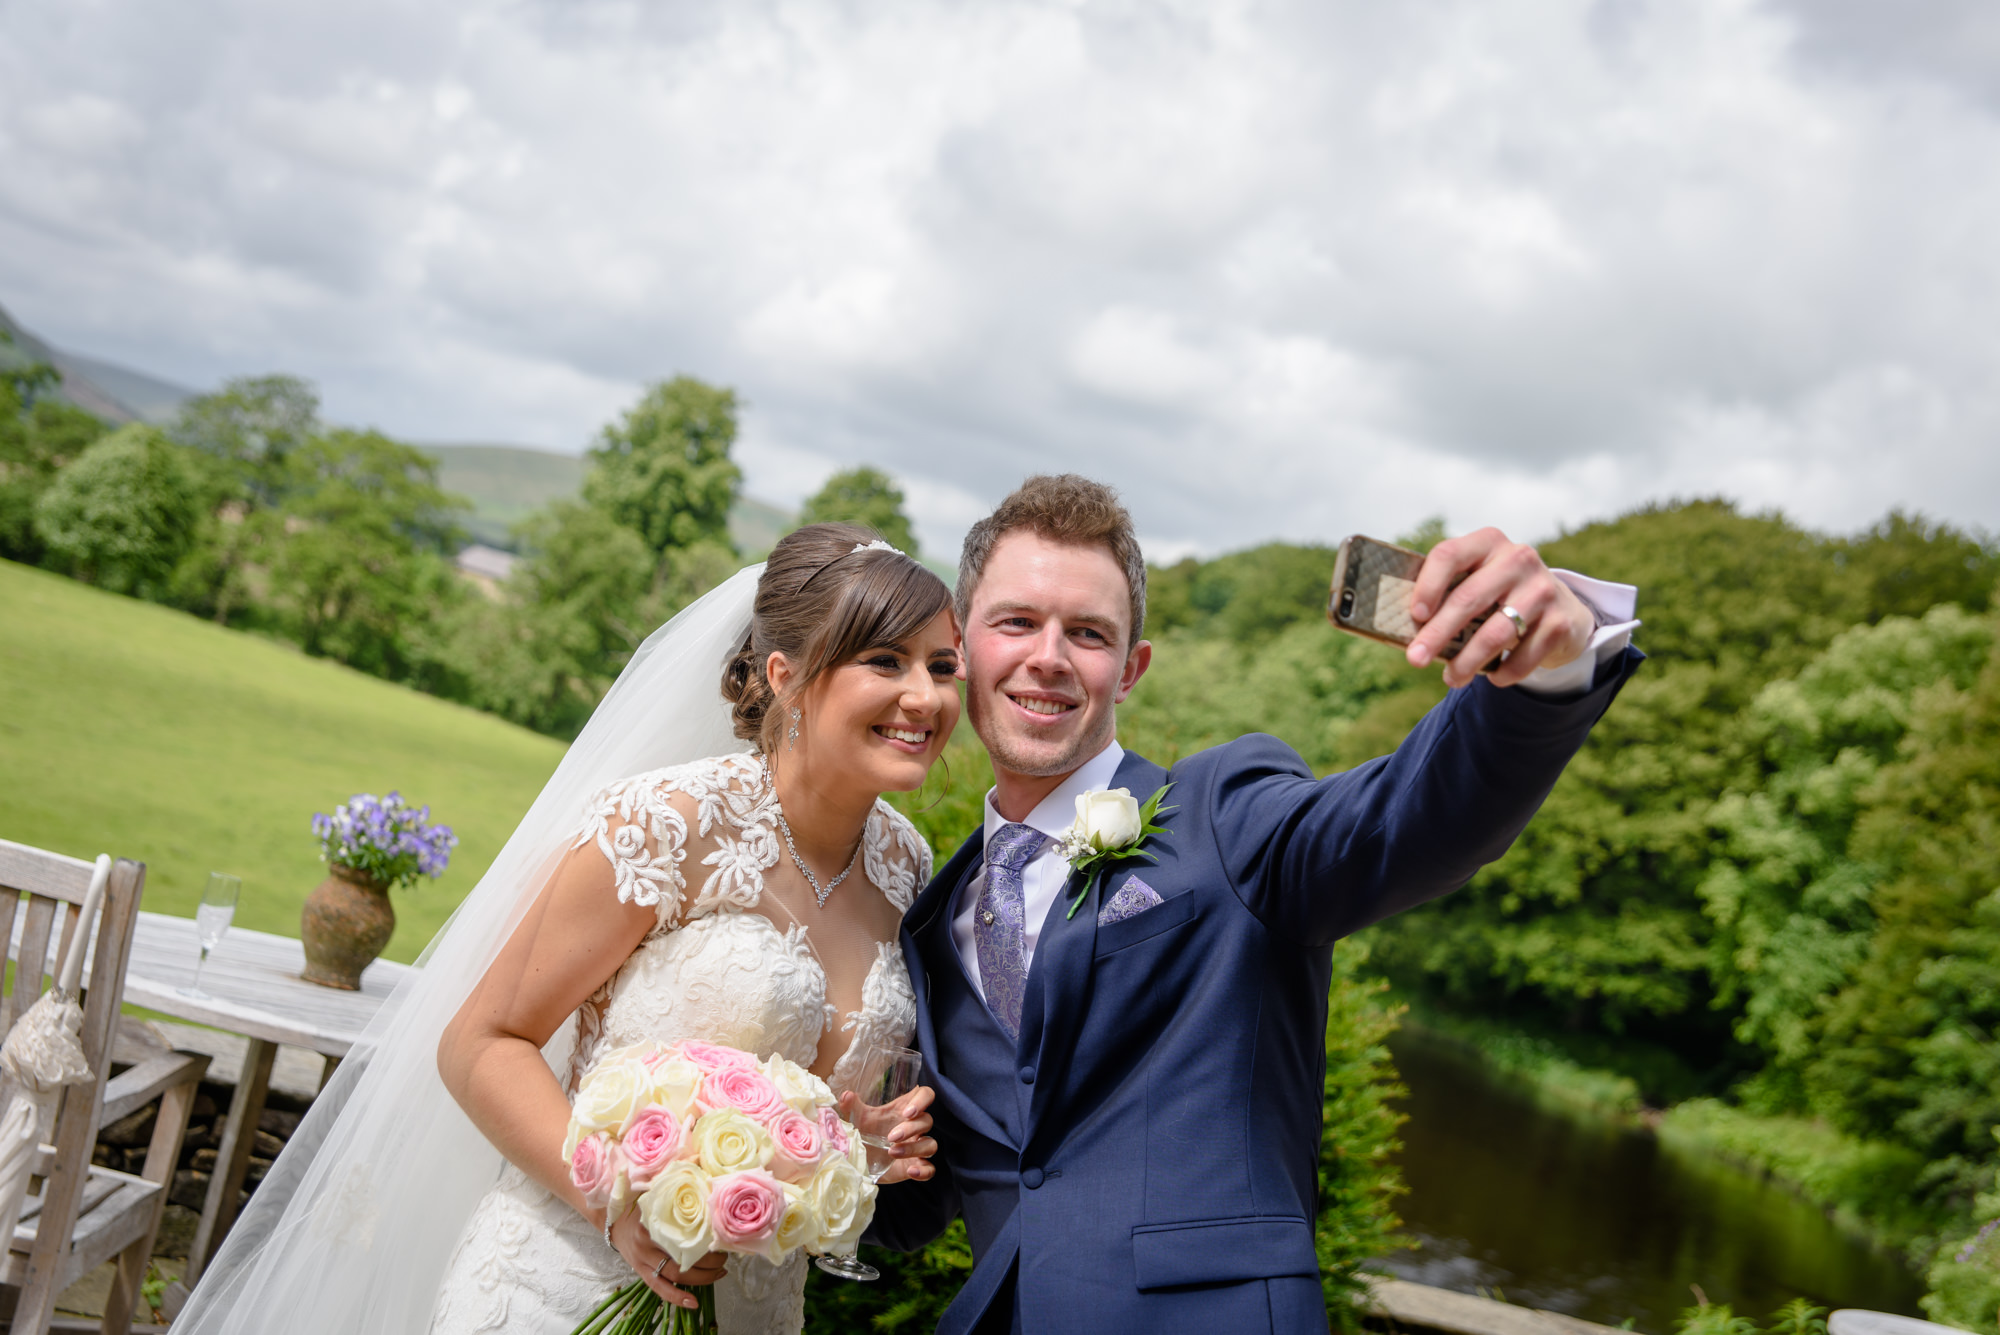 Bride and groom taking a selfie2022.02.20 Catherine and James